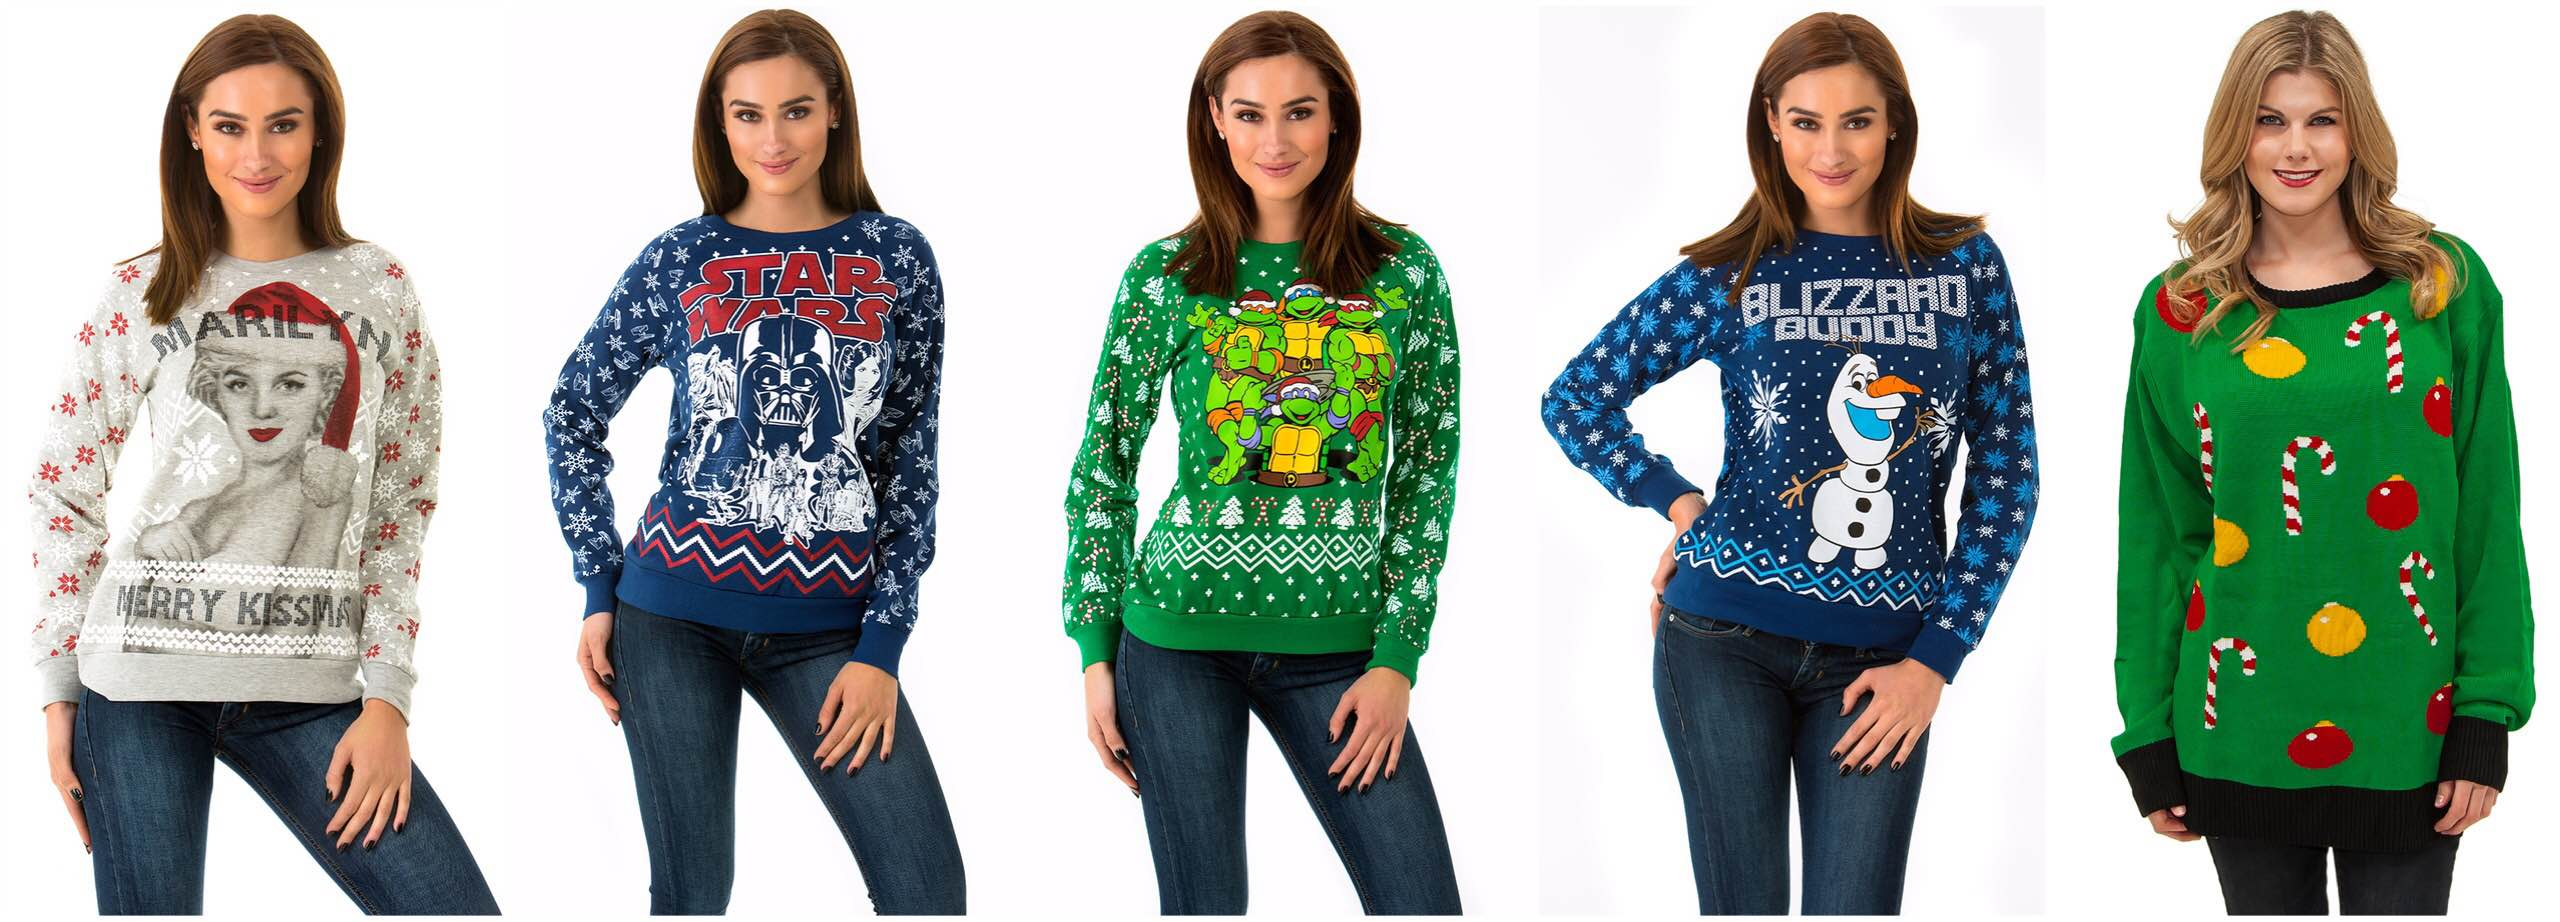 enticing marilyn monroe christmas sweater 2 navy blue star wars holiday sweater 3 radical teenage mutant ninja turtle holiday sweater 4